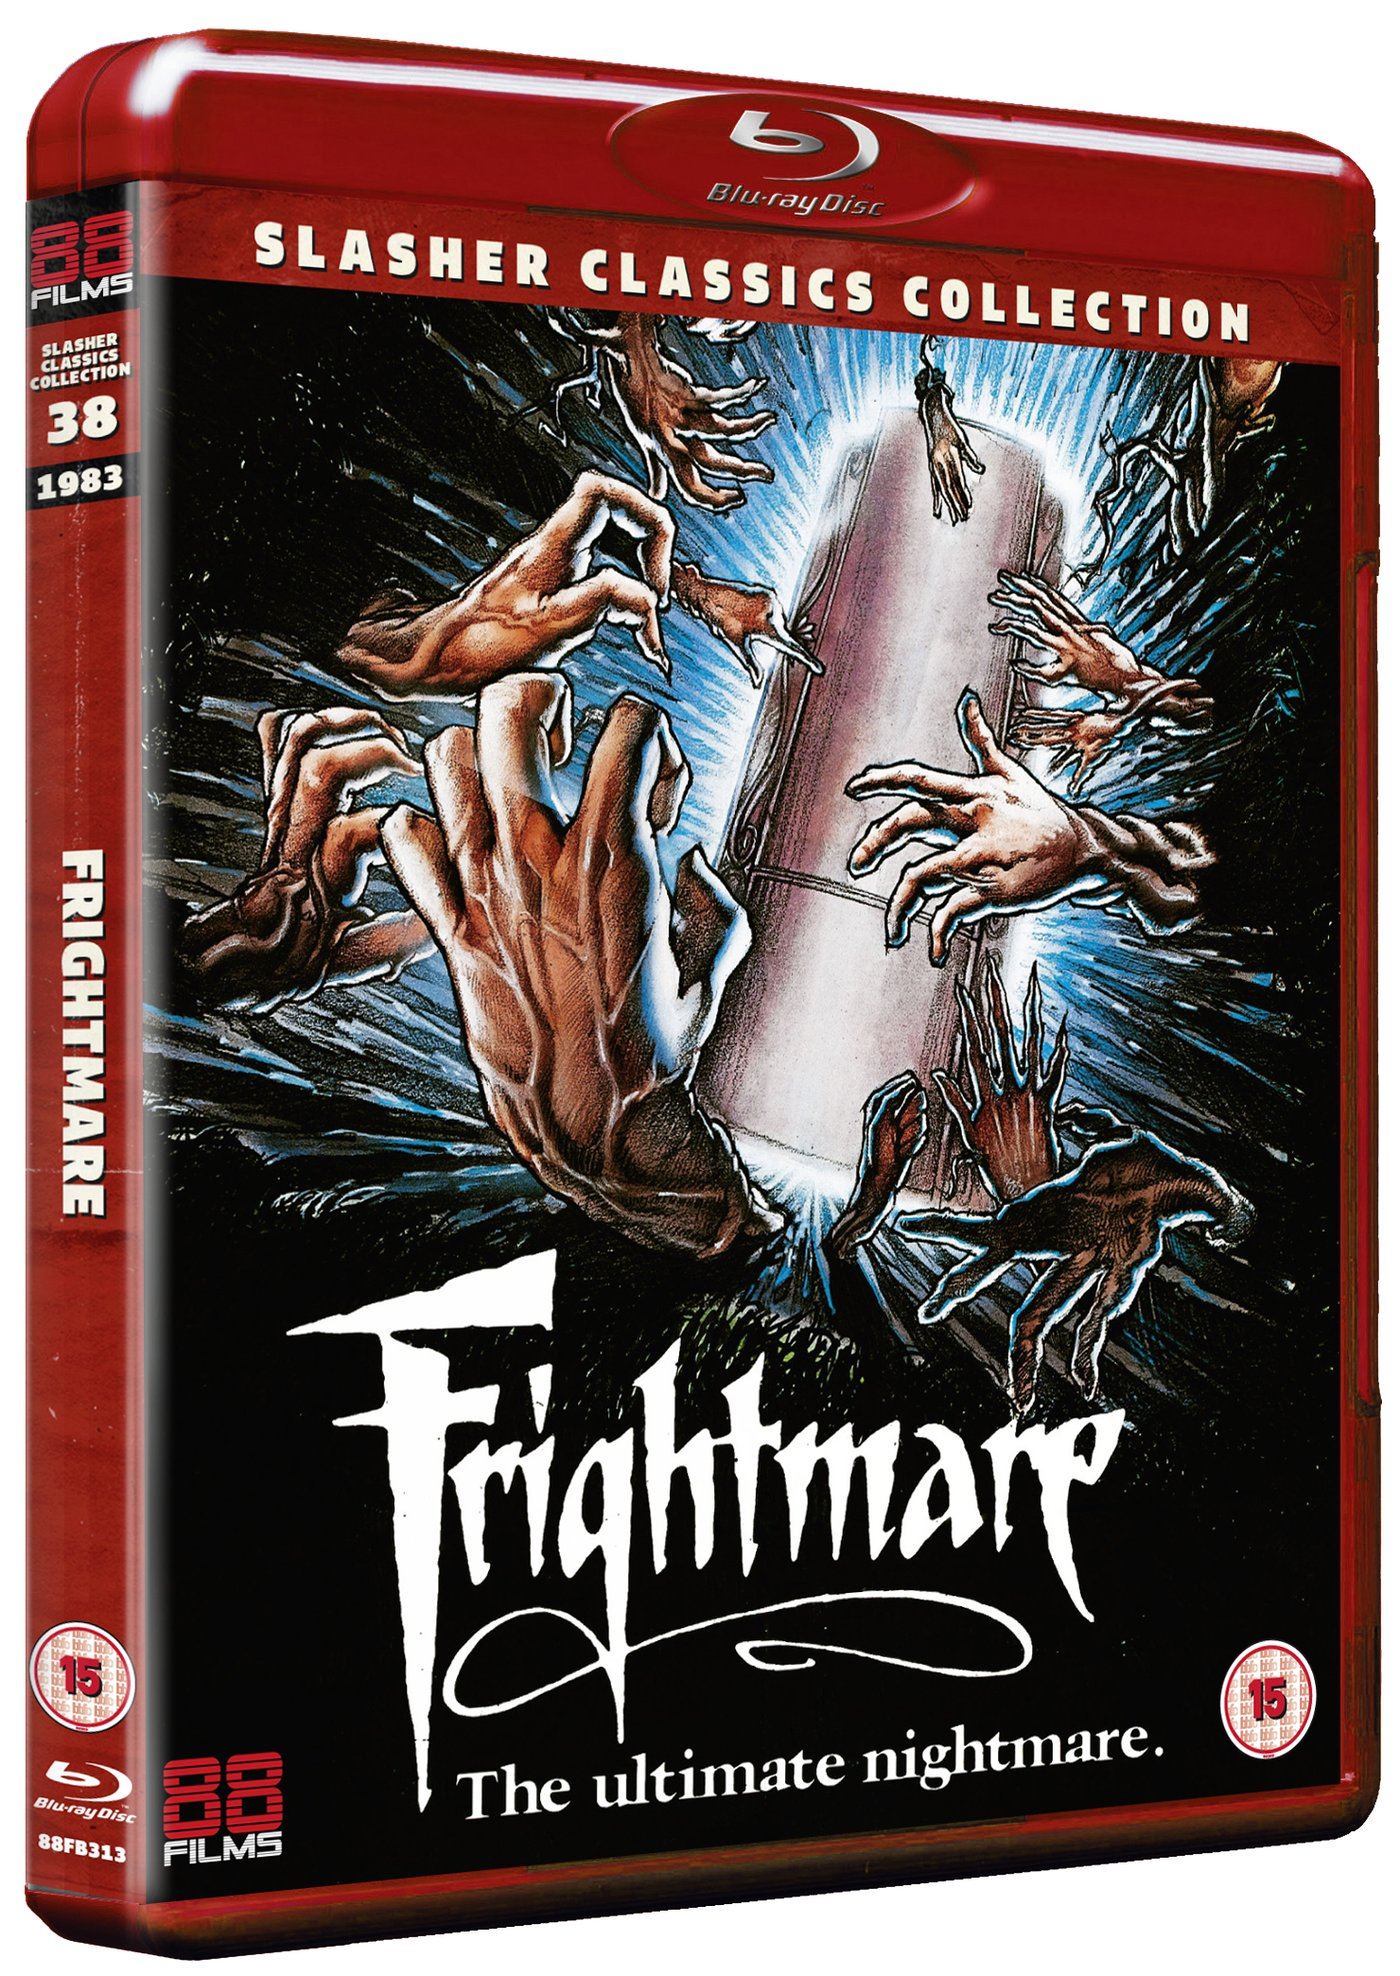 Frightmare UK Blu-Ray 3